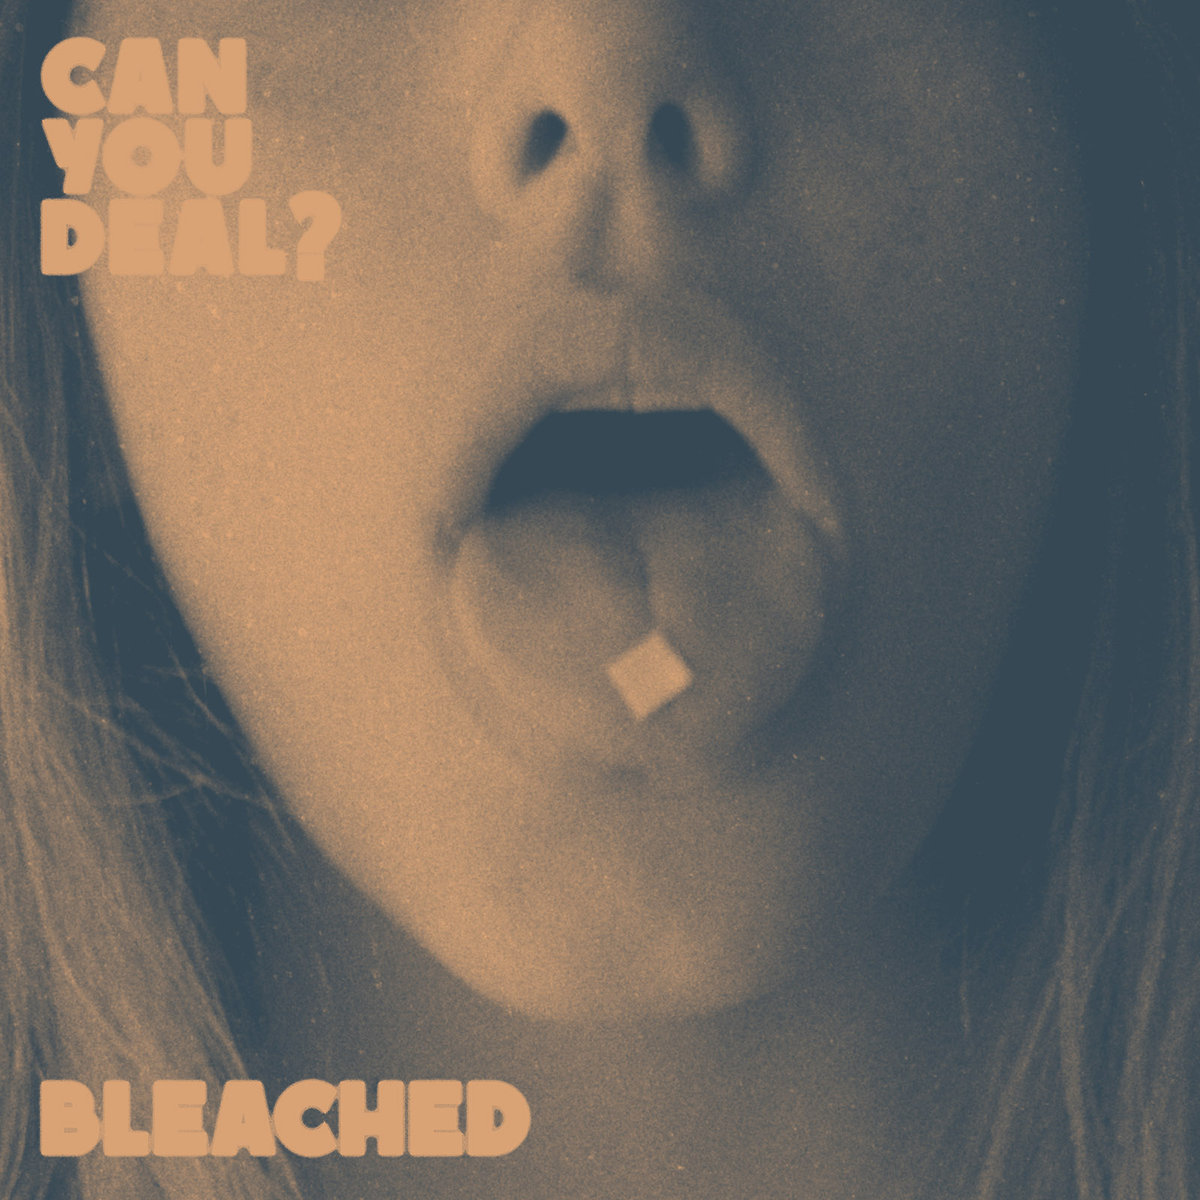 'Can You Deal?' by Bleached, album review by Adam Williams.